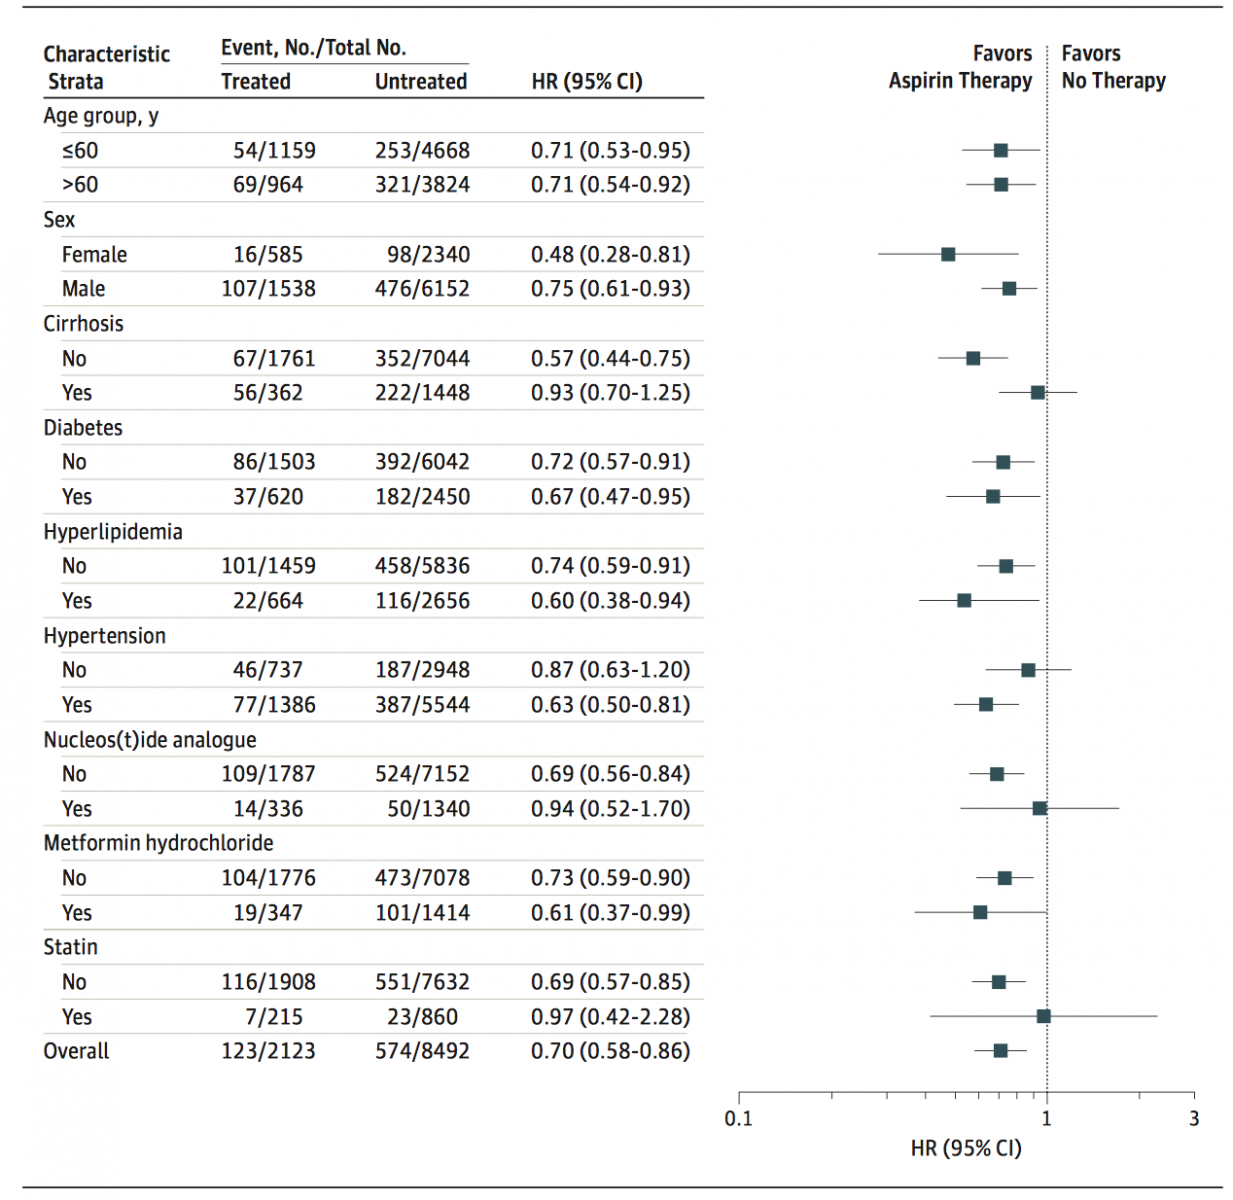 Daily use of aspirin for 90 days or more days was associated with 29% HCC risk reduction